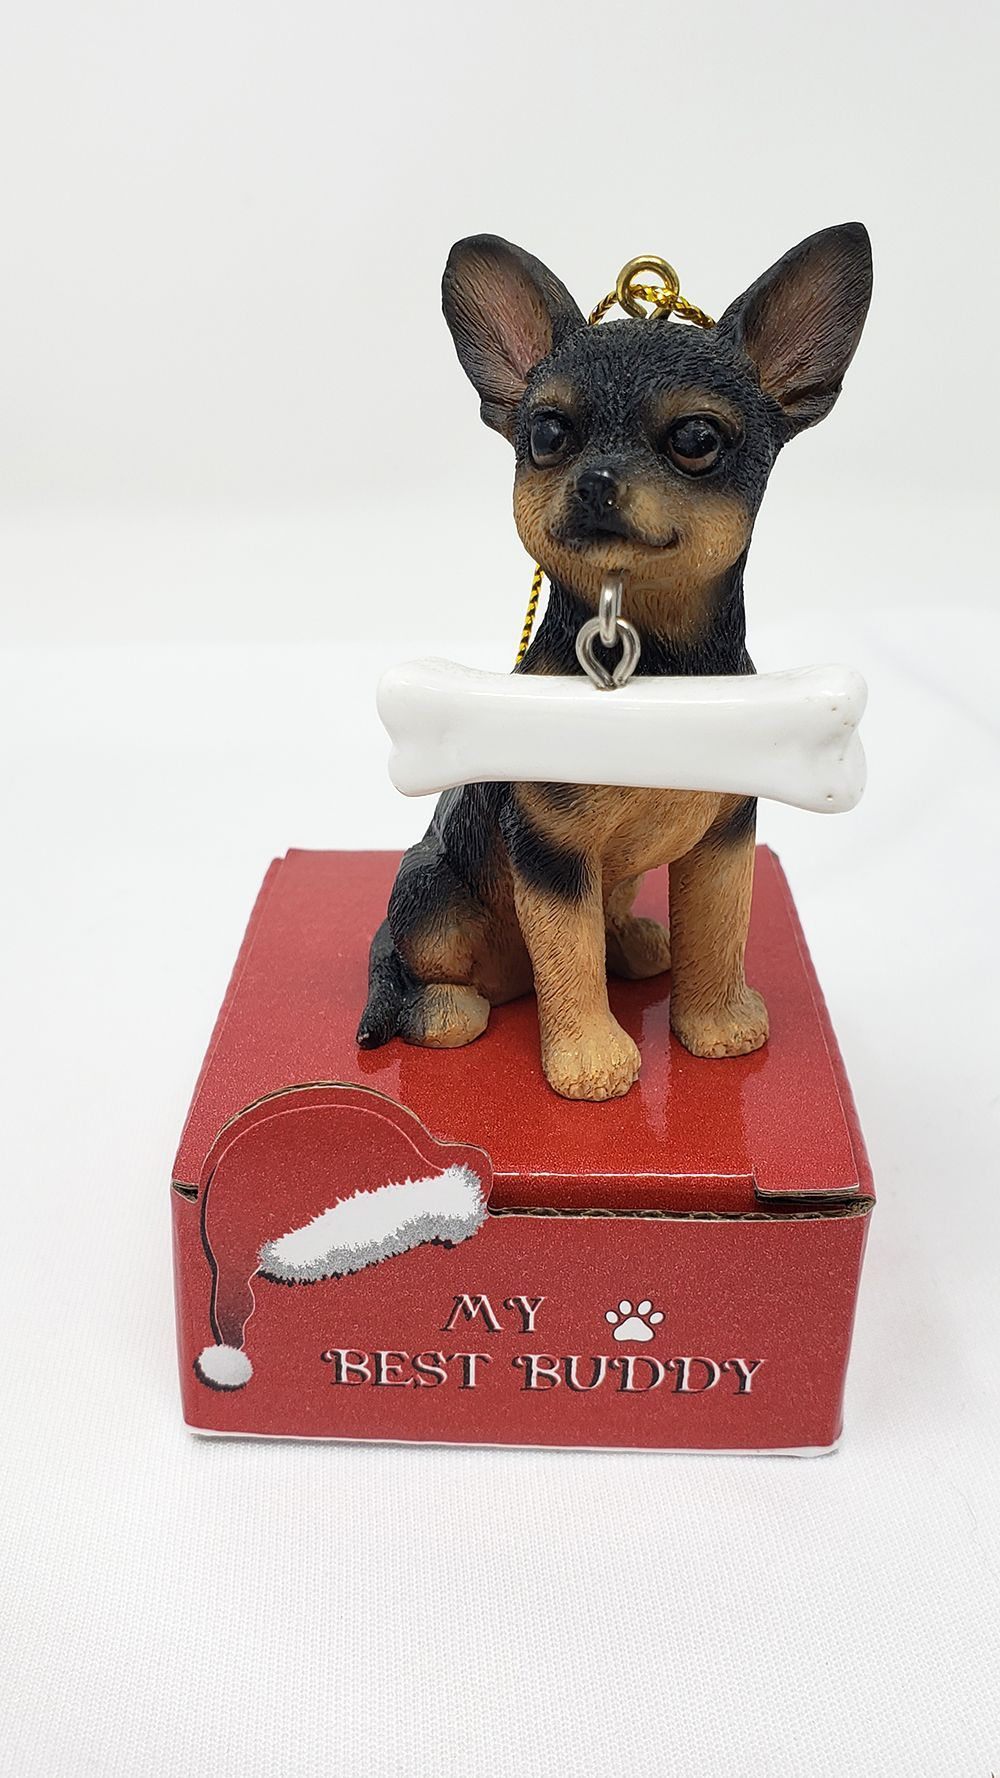 My Best Buddy Chihuahua Christmas Ornament